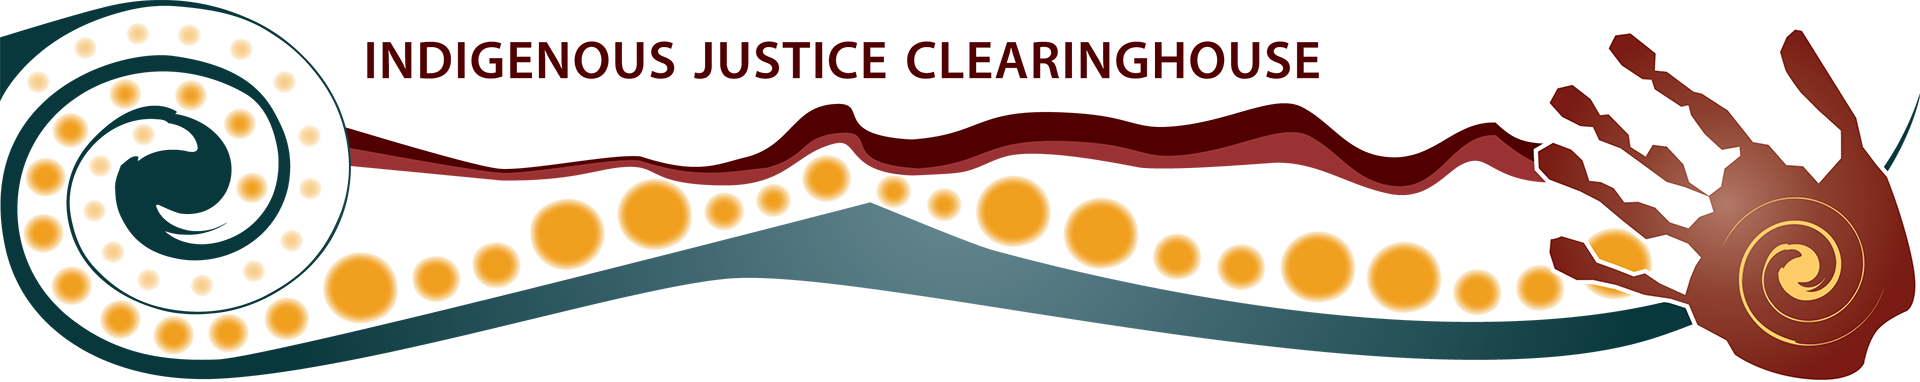 Indigenous Justice Clearinghouse